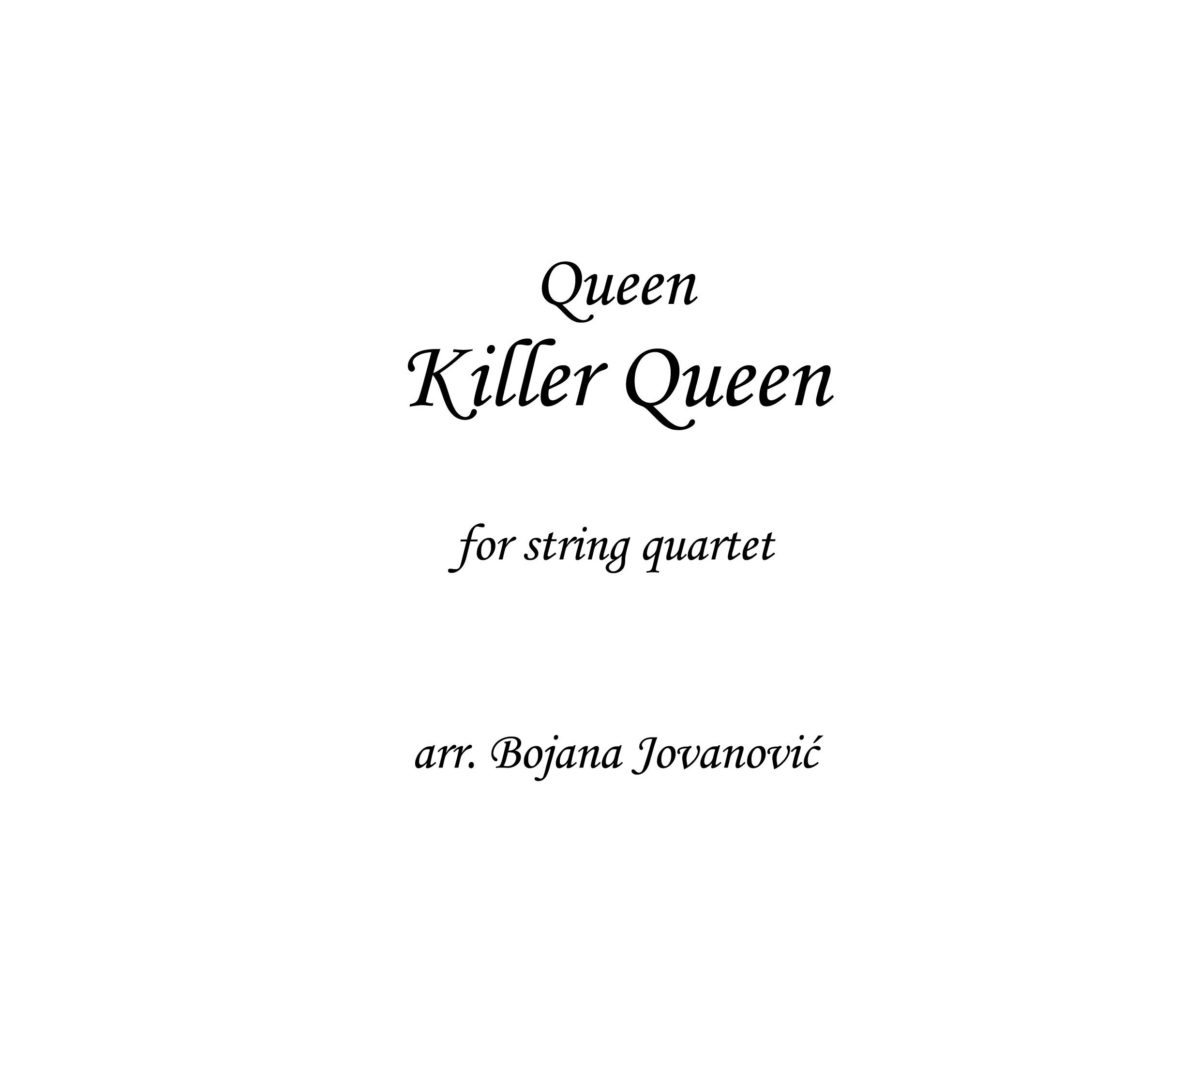 Killer Queen (Queen) - Sheet Music